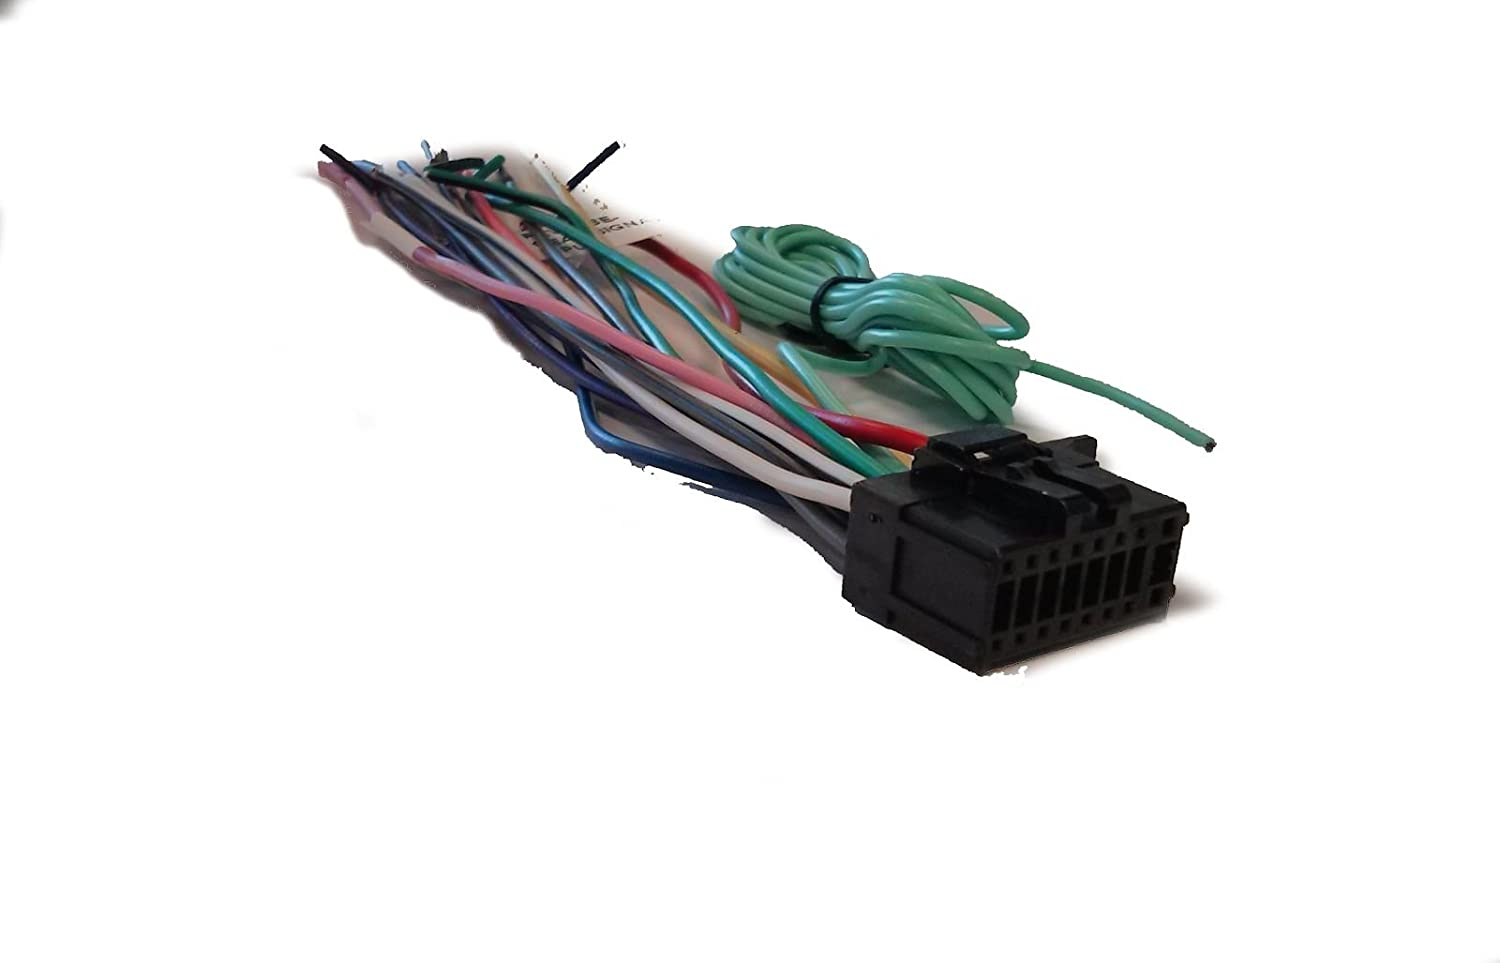 61s%2B2yUu BL._SL1500_ amazon com pioneer wire harness for sph da210 sph da100 sph da200 sph-da100 wiring harness at aneh.co